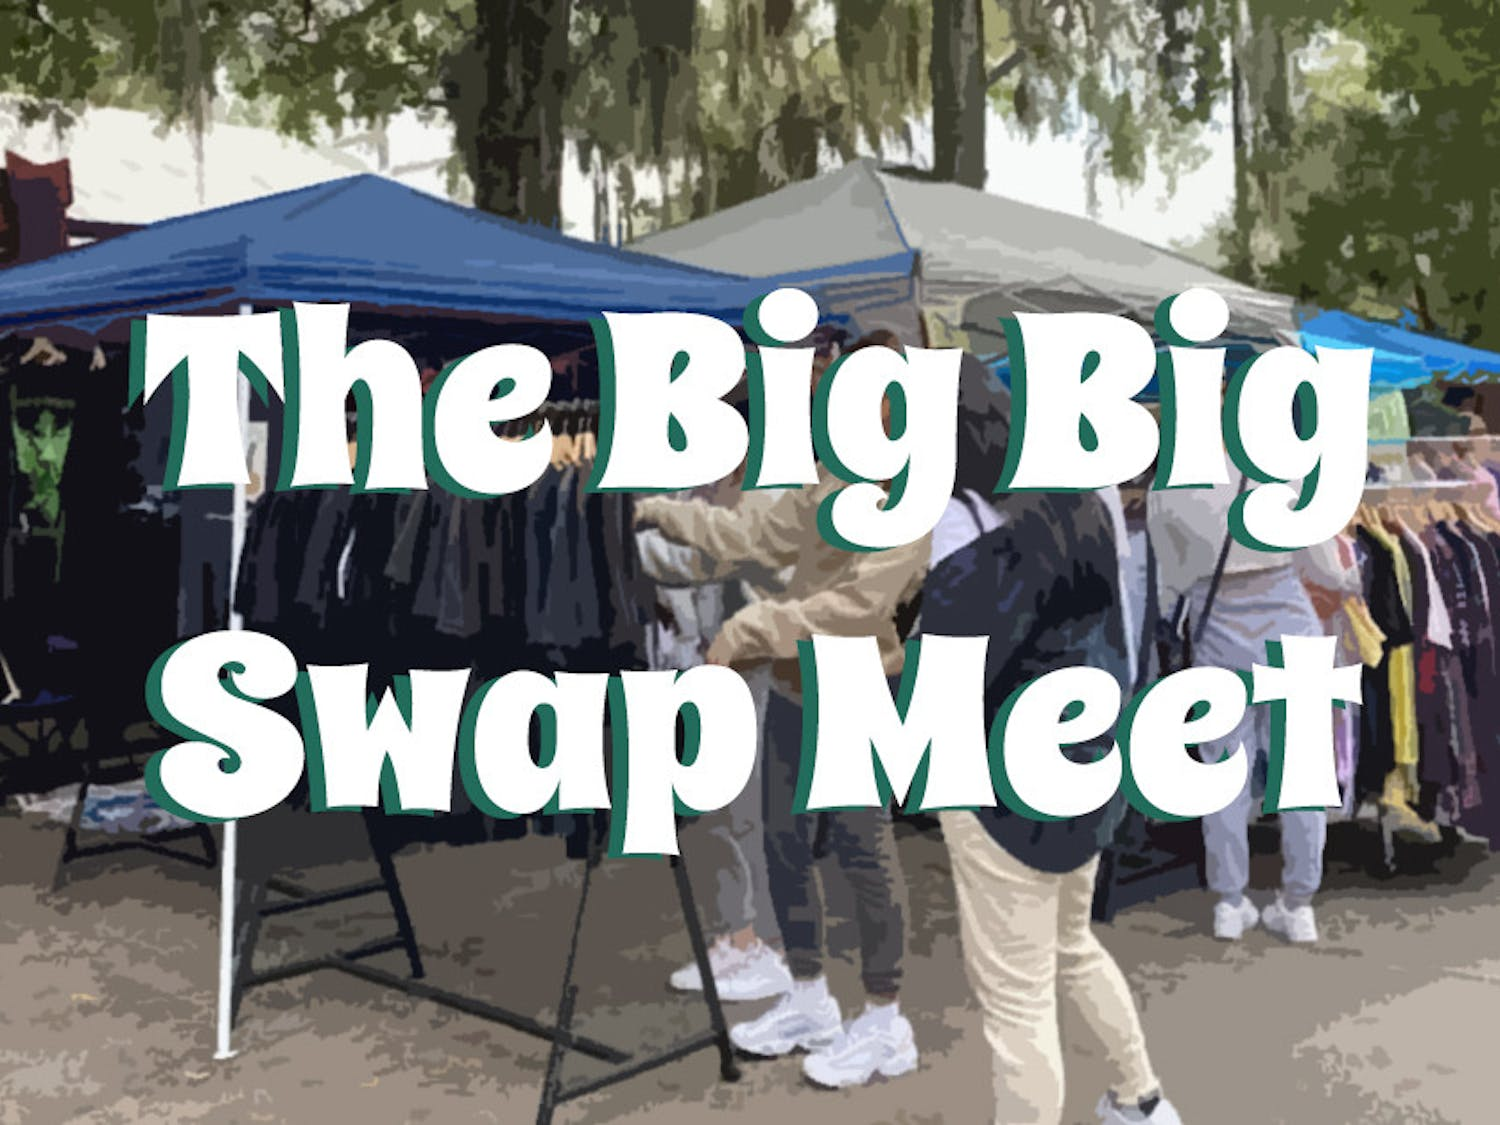 The Big Big Swamp Meet took place at Heartwood Soundstage Sept. 19.